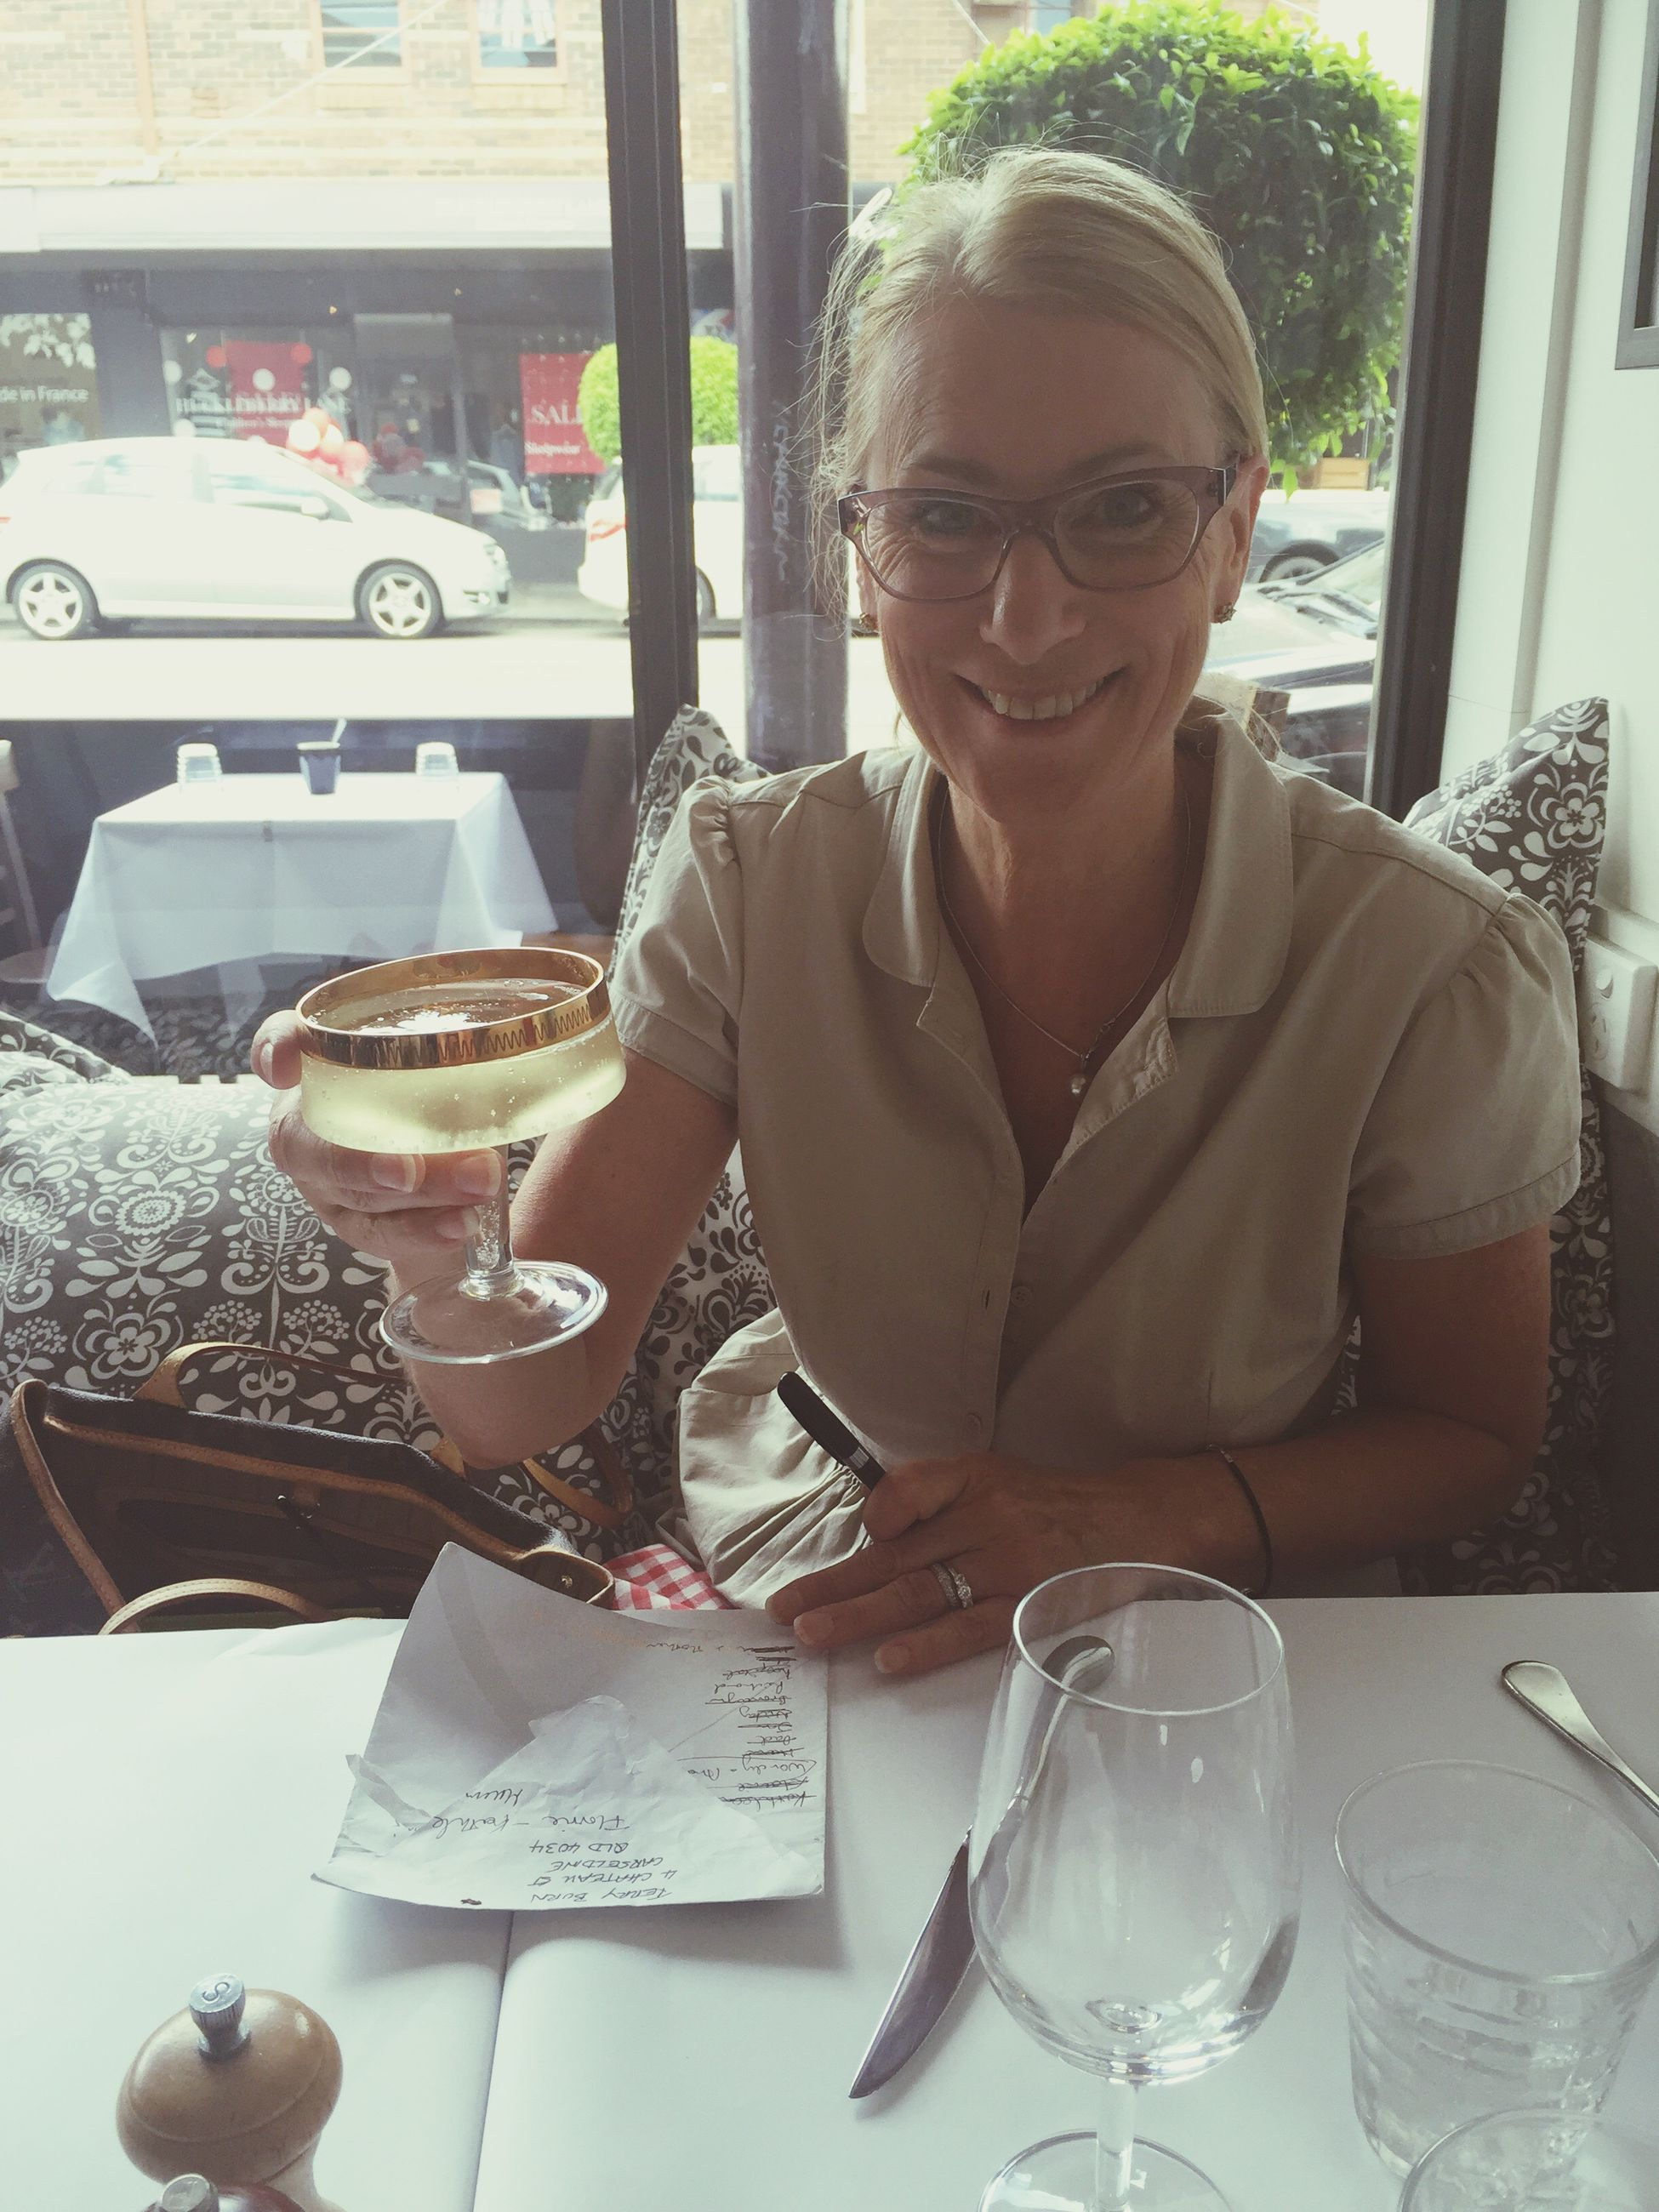 indoors, person, table, sitting, young adult, drink, restaurant, lifestyles, food and drink, leisure activity, casual clothing, refreshment, front view, looking at camera, portrait, wineglass, chair, drinking glass